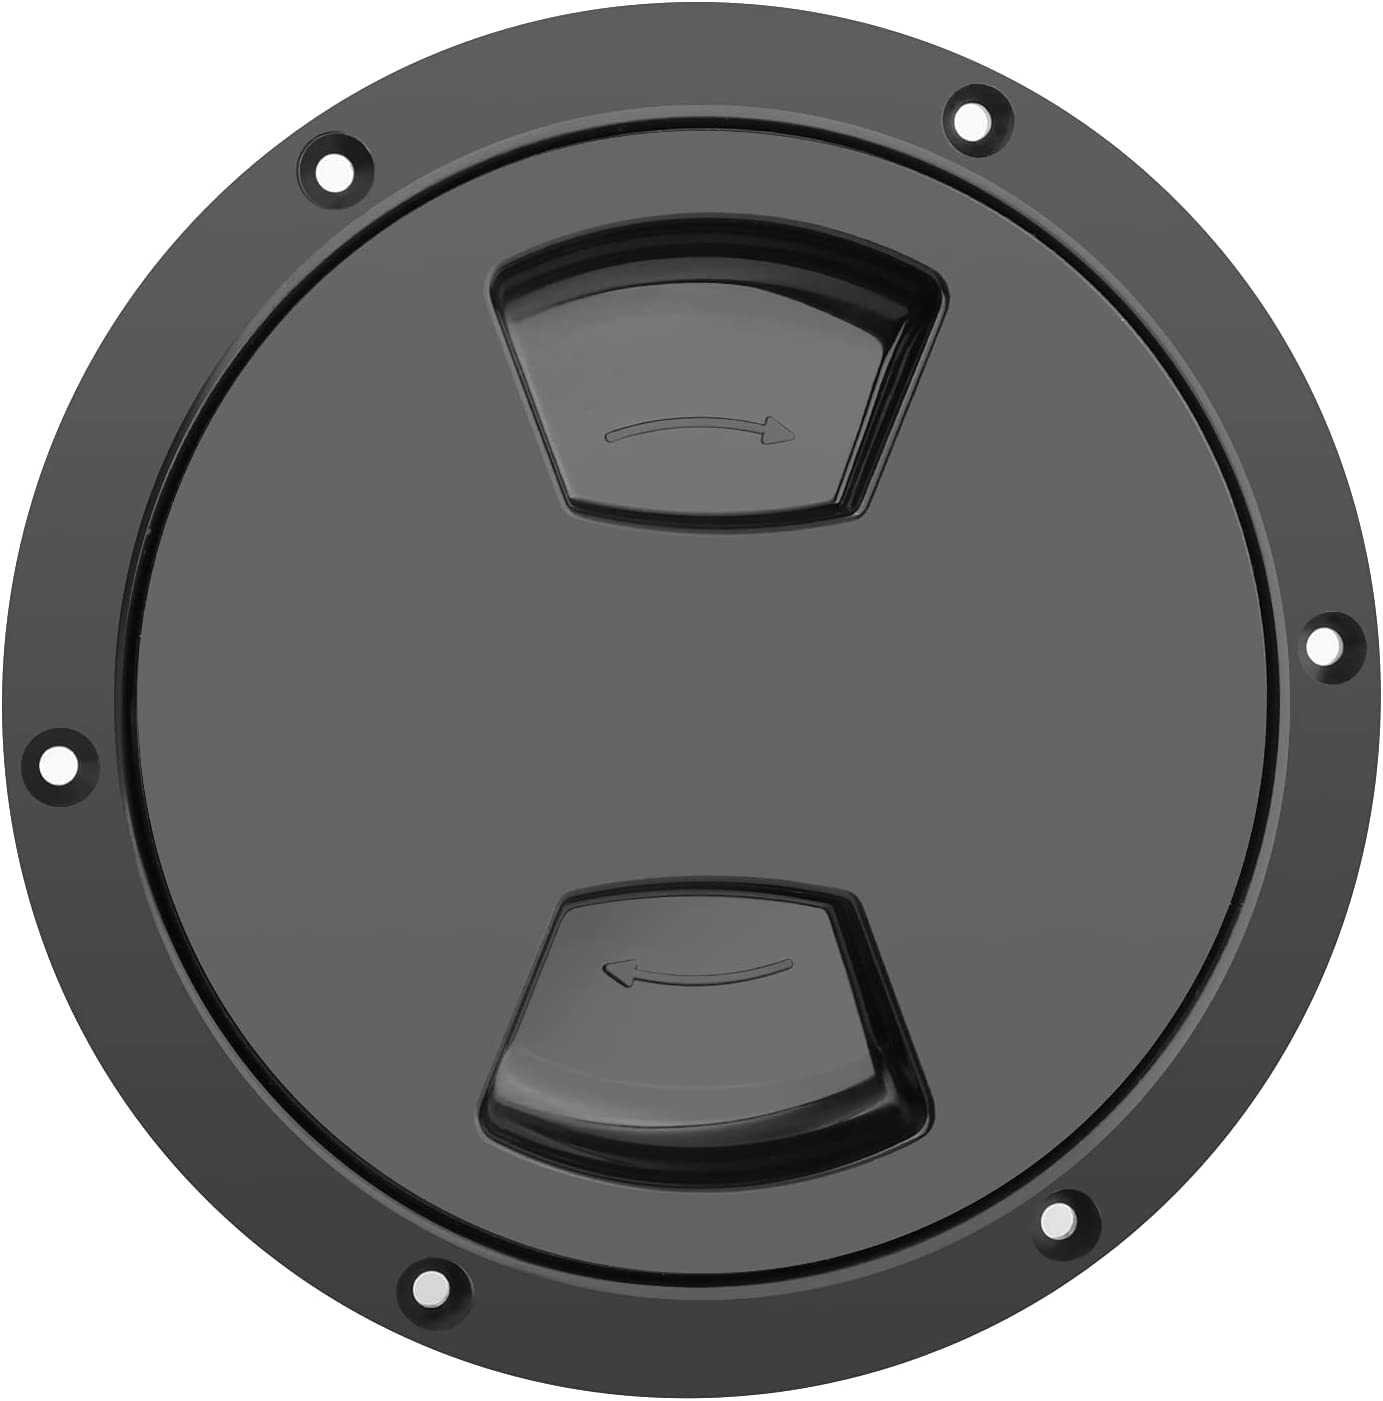 Marine Boat Kayak OFFicial shop Canoe Circular Plates Hatch Cover latest Deck